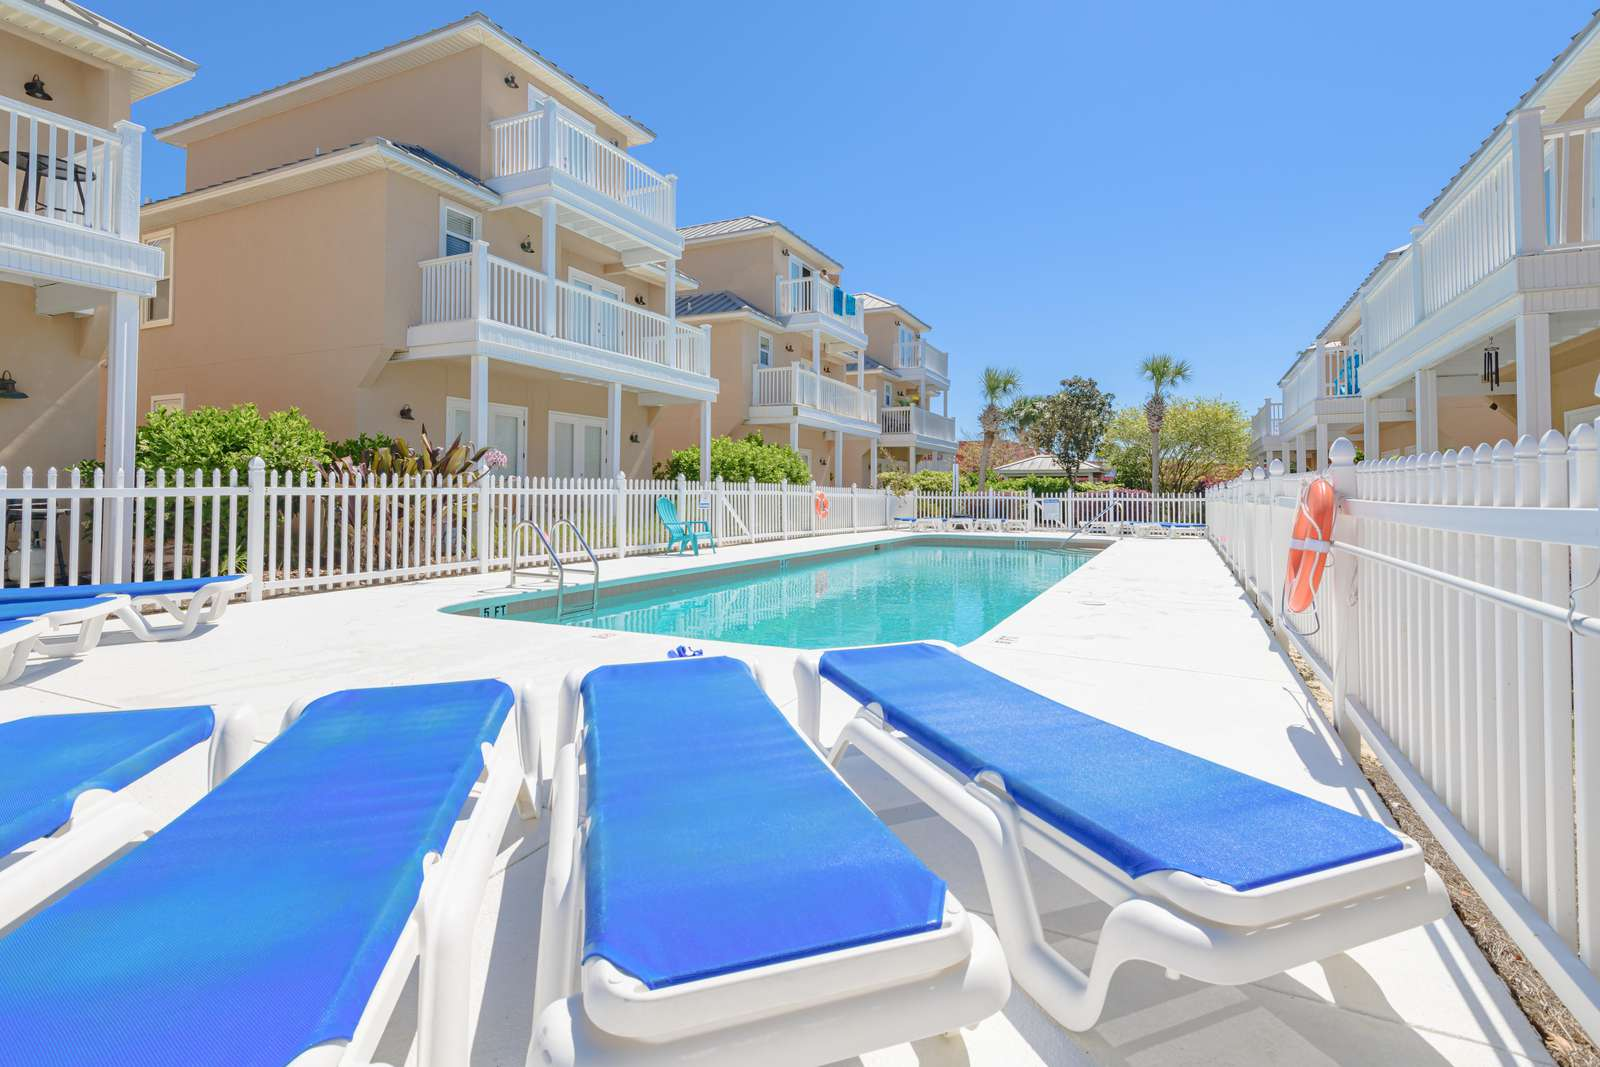 Grab a drink and a seat at the pool!